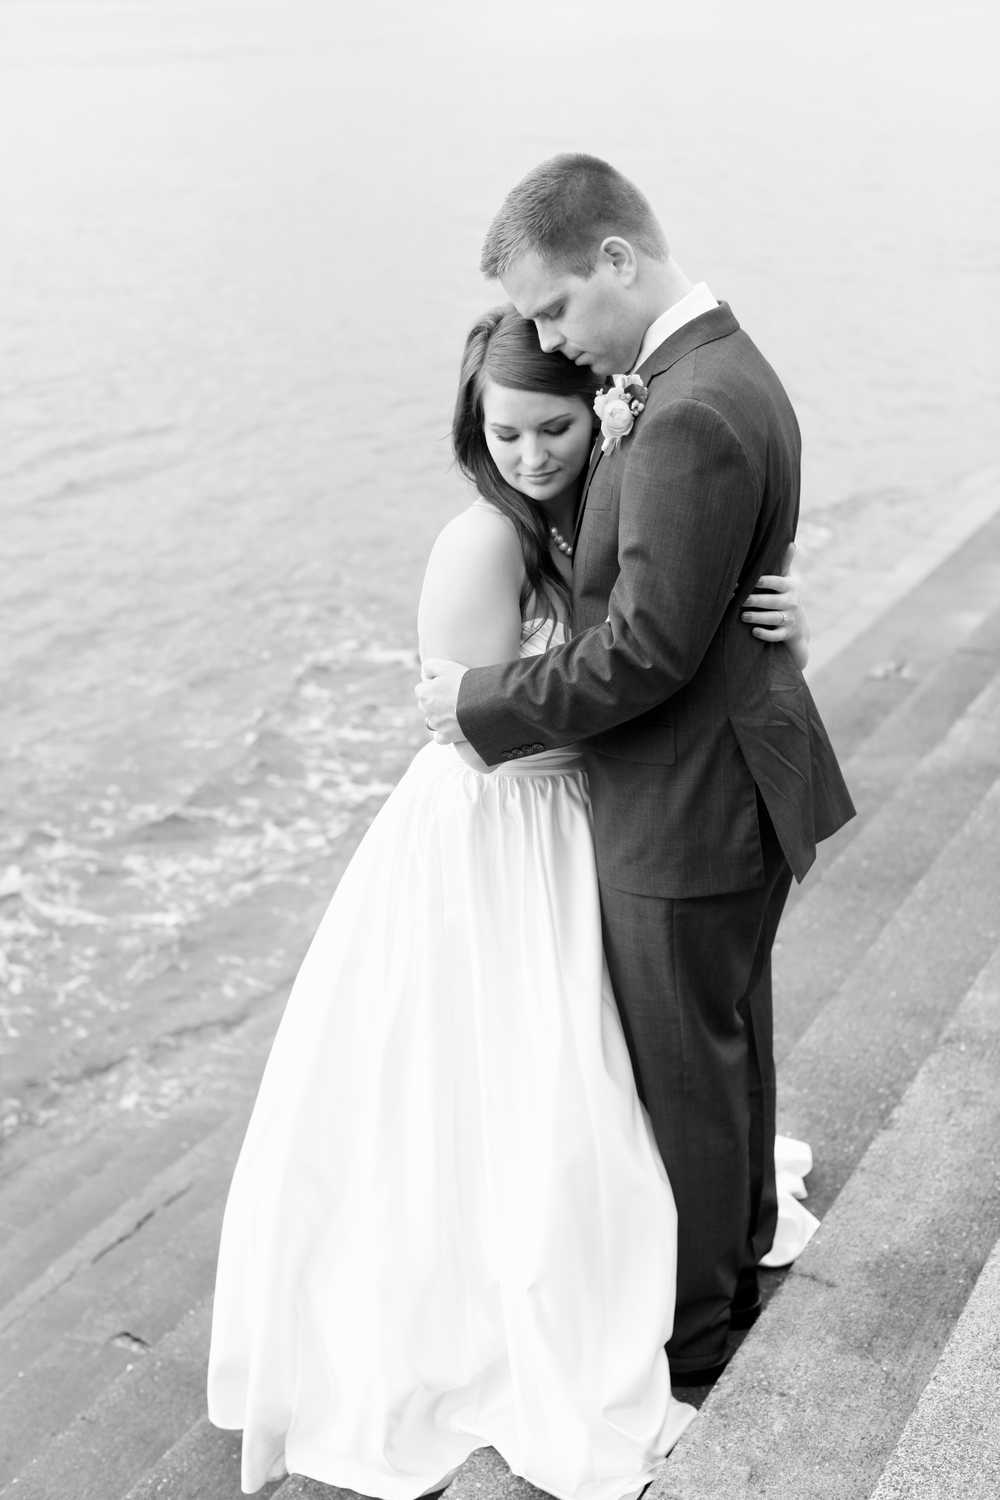 seattle wedding photographer photography rachael kruse ocean pudget sound the hall at fauntleroy film photographer engagement west seattle bride and groom photos bride and groom steps into ocean water